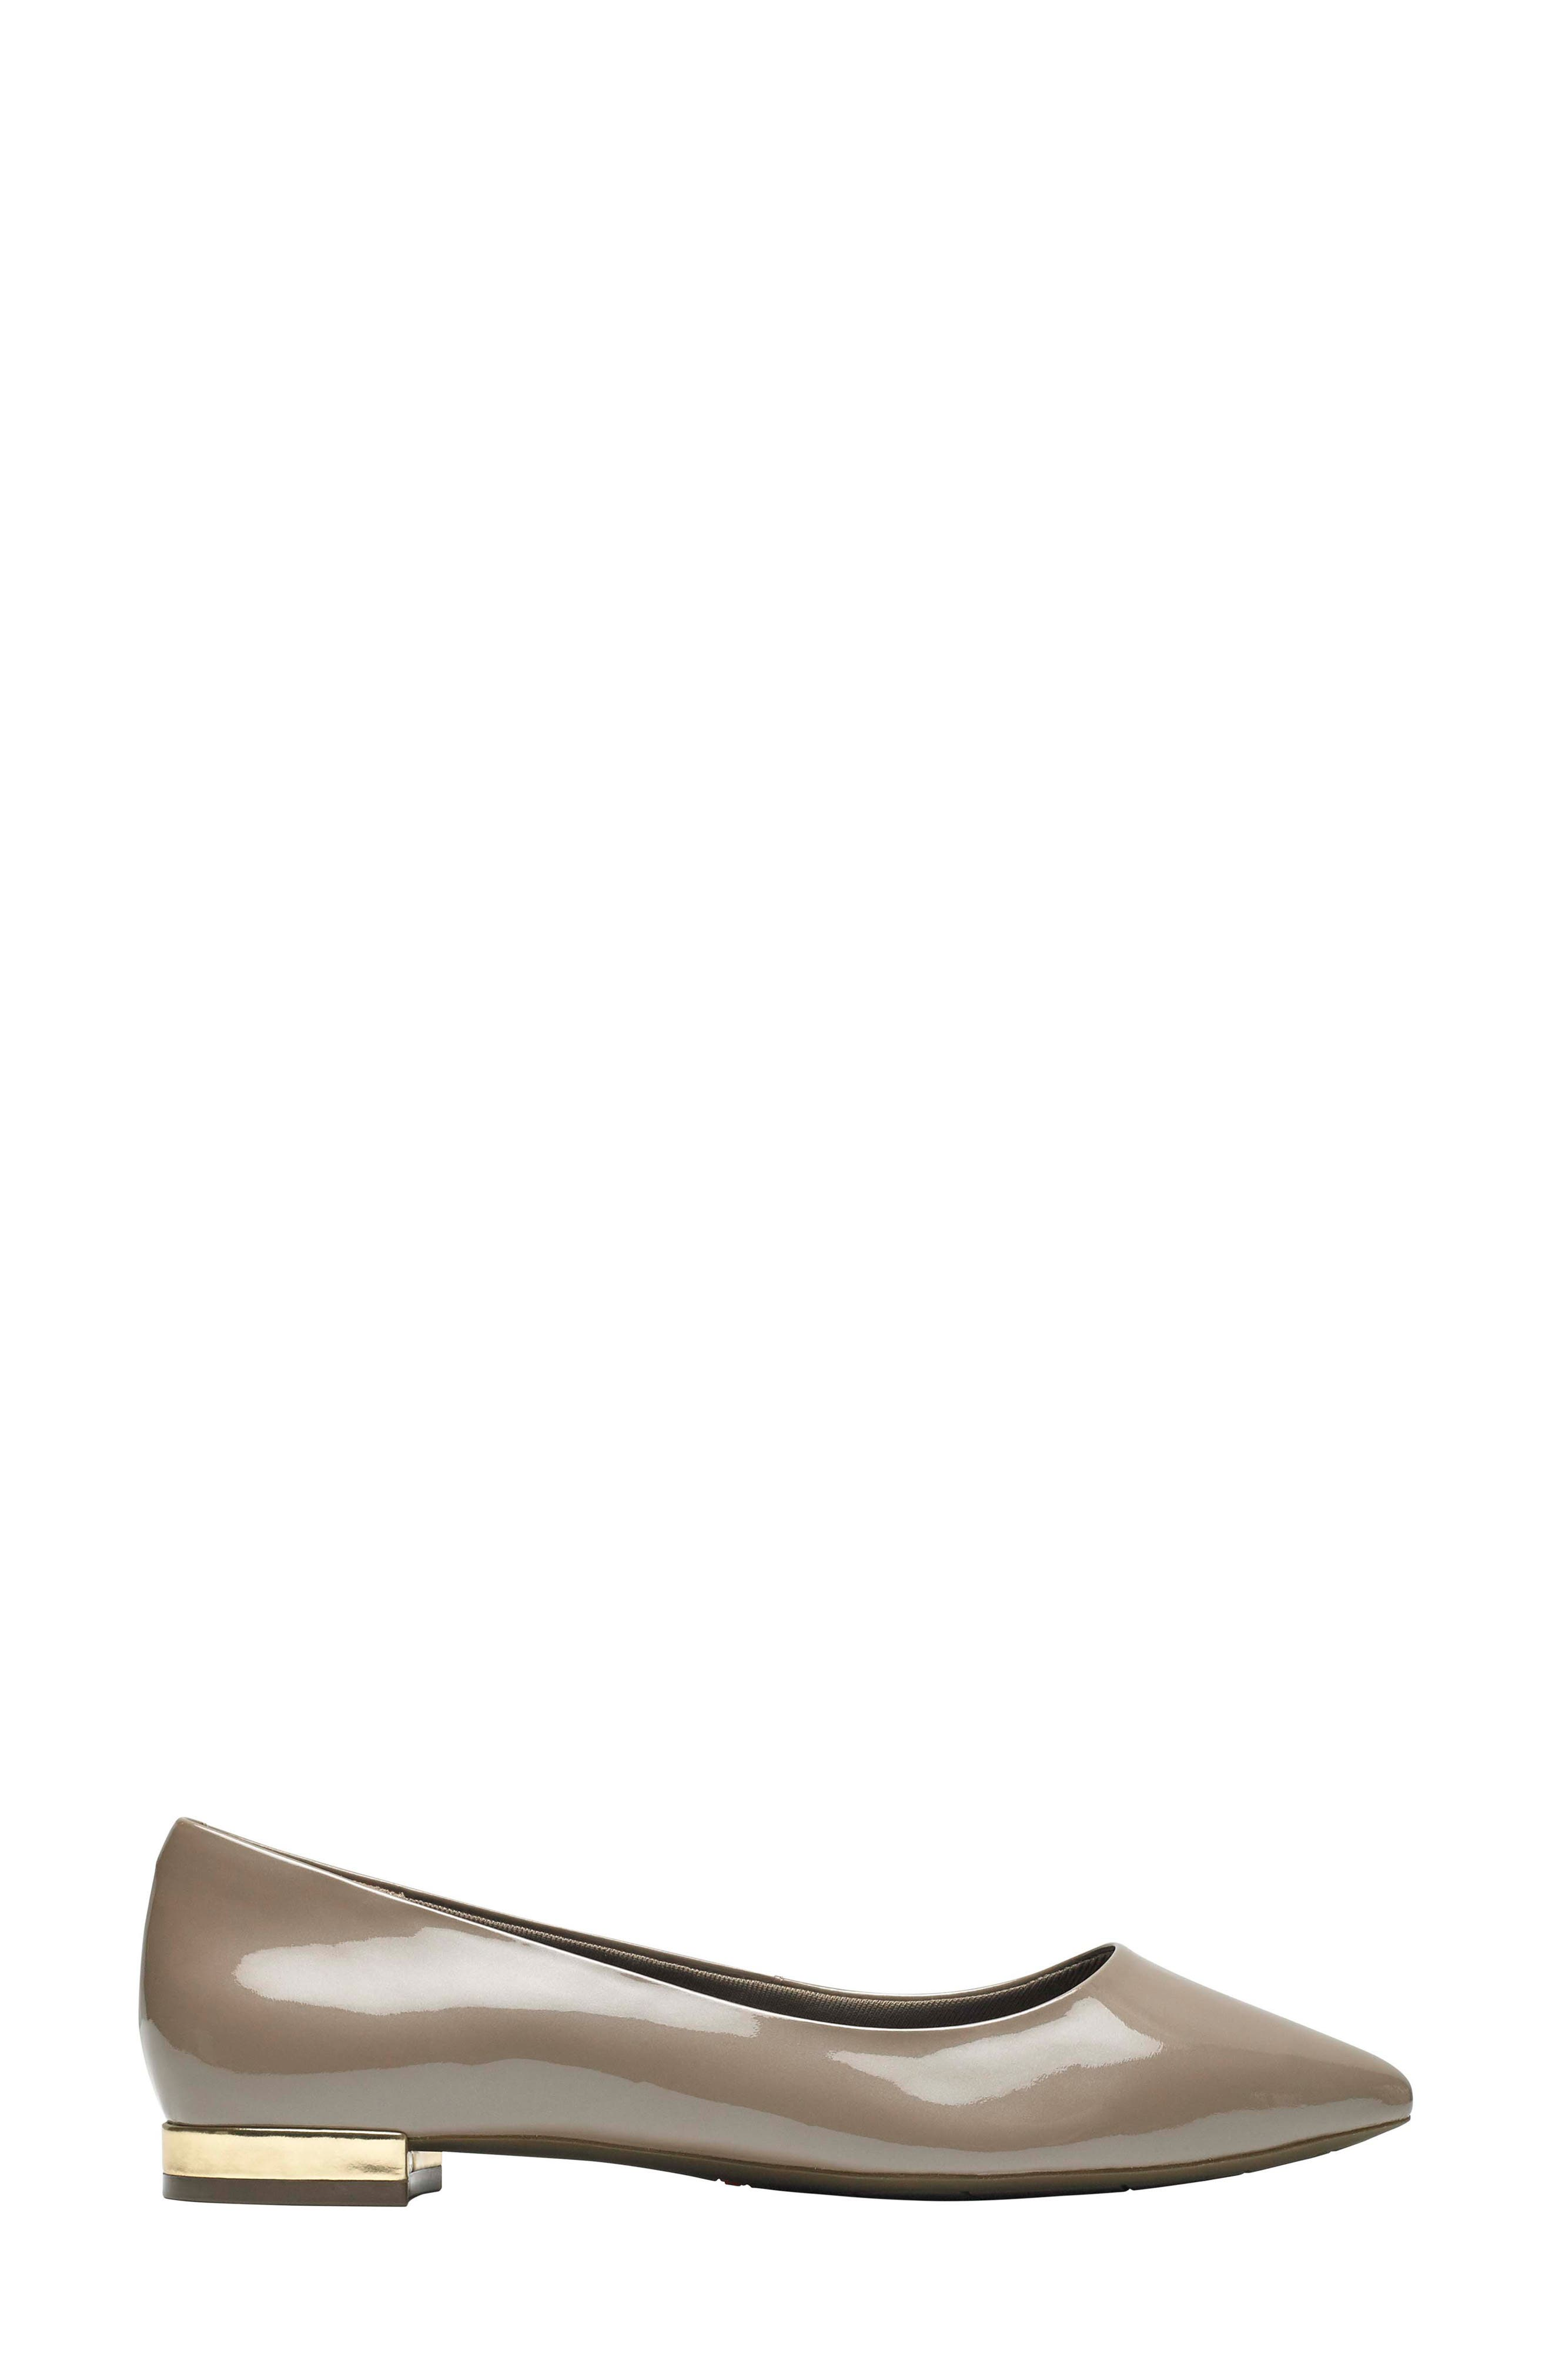 'Total Motion - Adelyn' Ballet Flat,                             Alternate thumbnail 3, color,                             TAUPE GREY PEARL PATENT